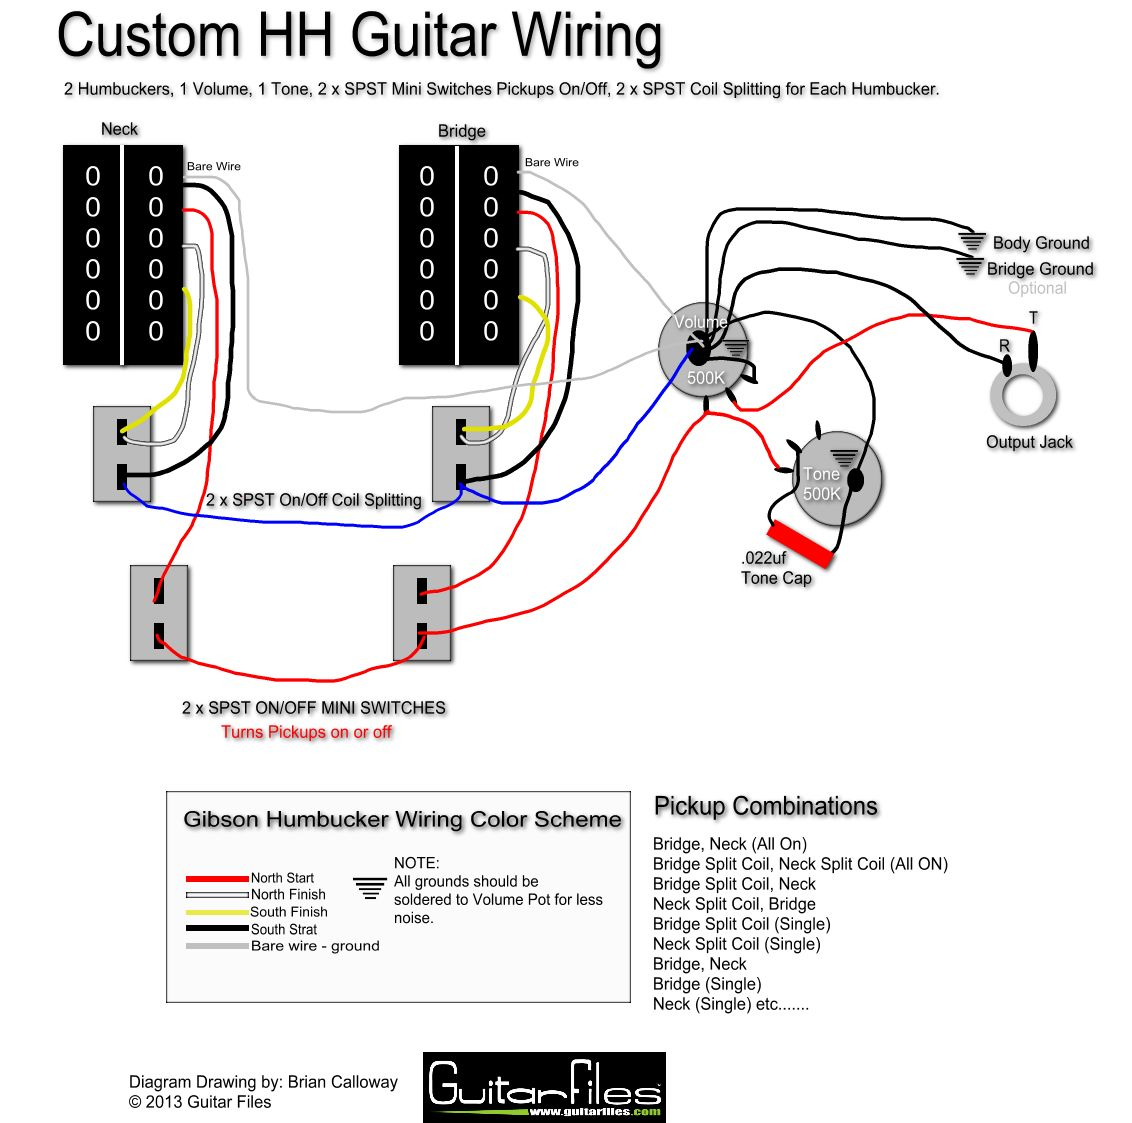 afe4f8370c0d308d426df63ec12f015c hh wiring diagram fender stagemaster hh wiring diagram \u2022 wiring  at aneh.co